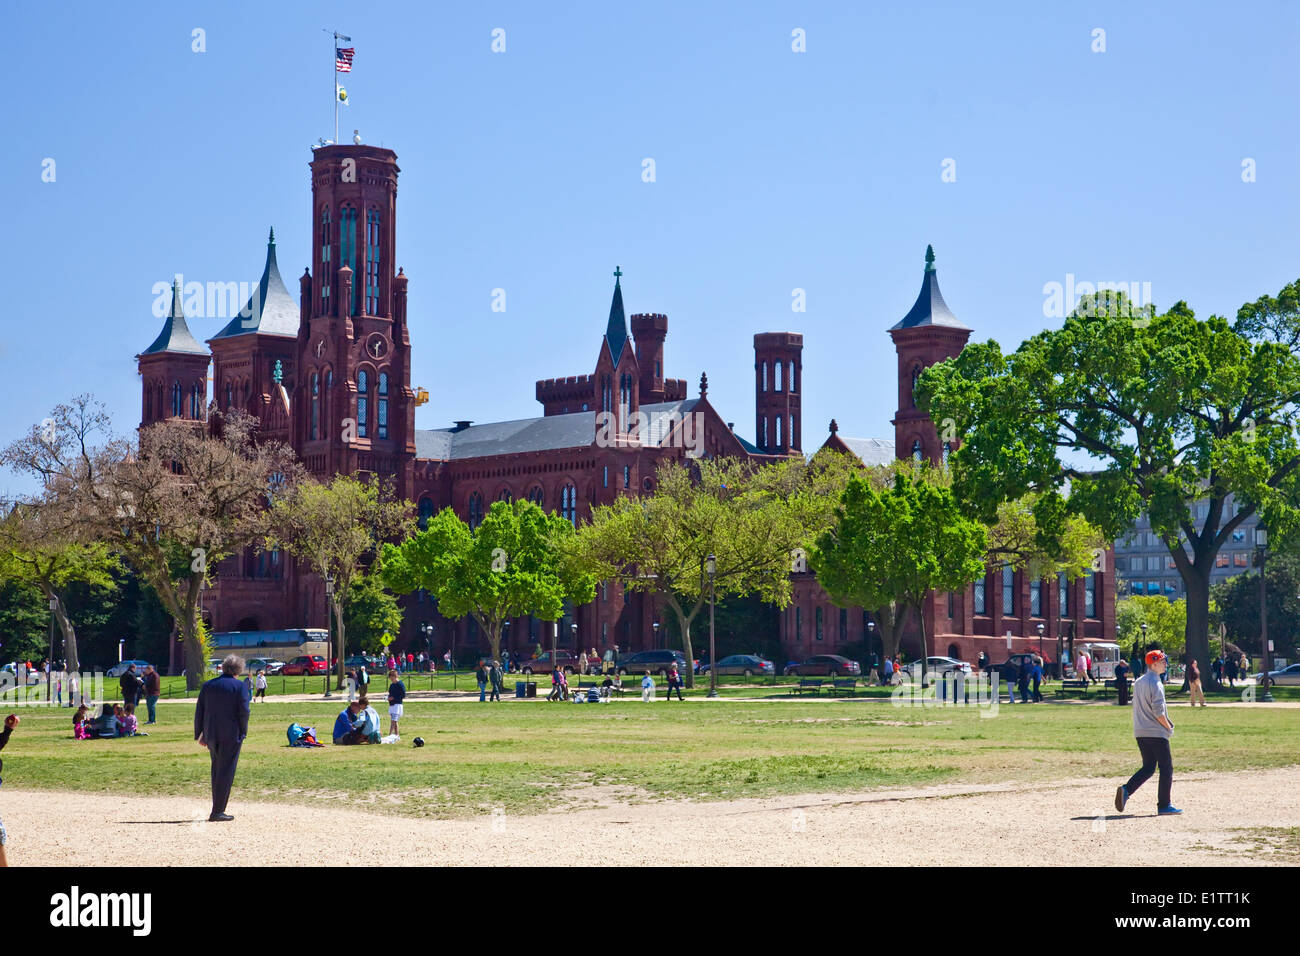 Smithonian Institution Castle at the Mall in Washington;D.C. USA, - Stock Image